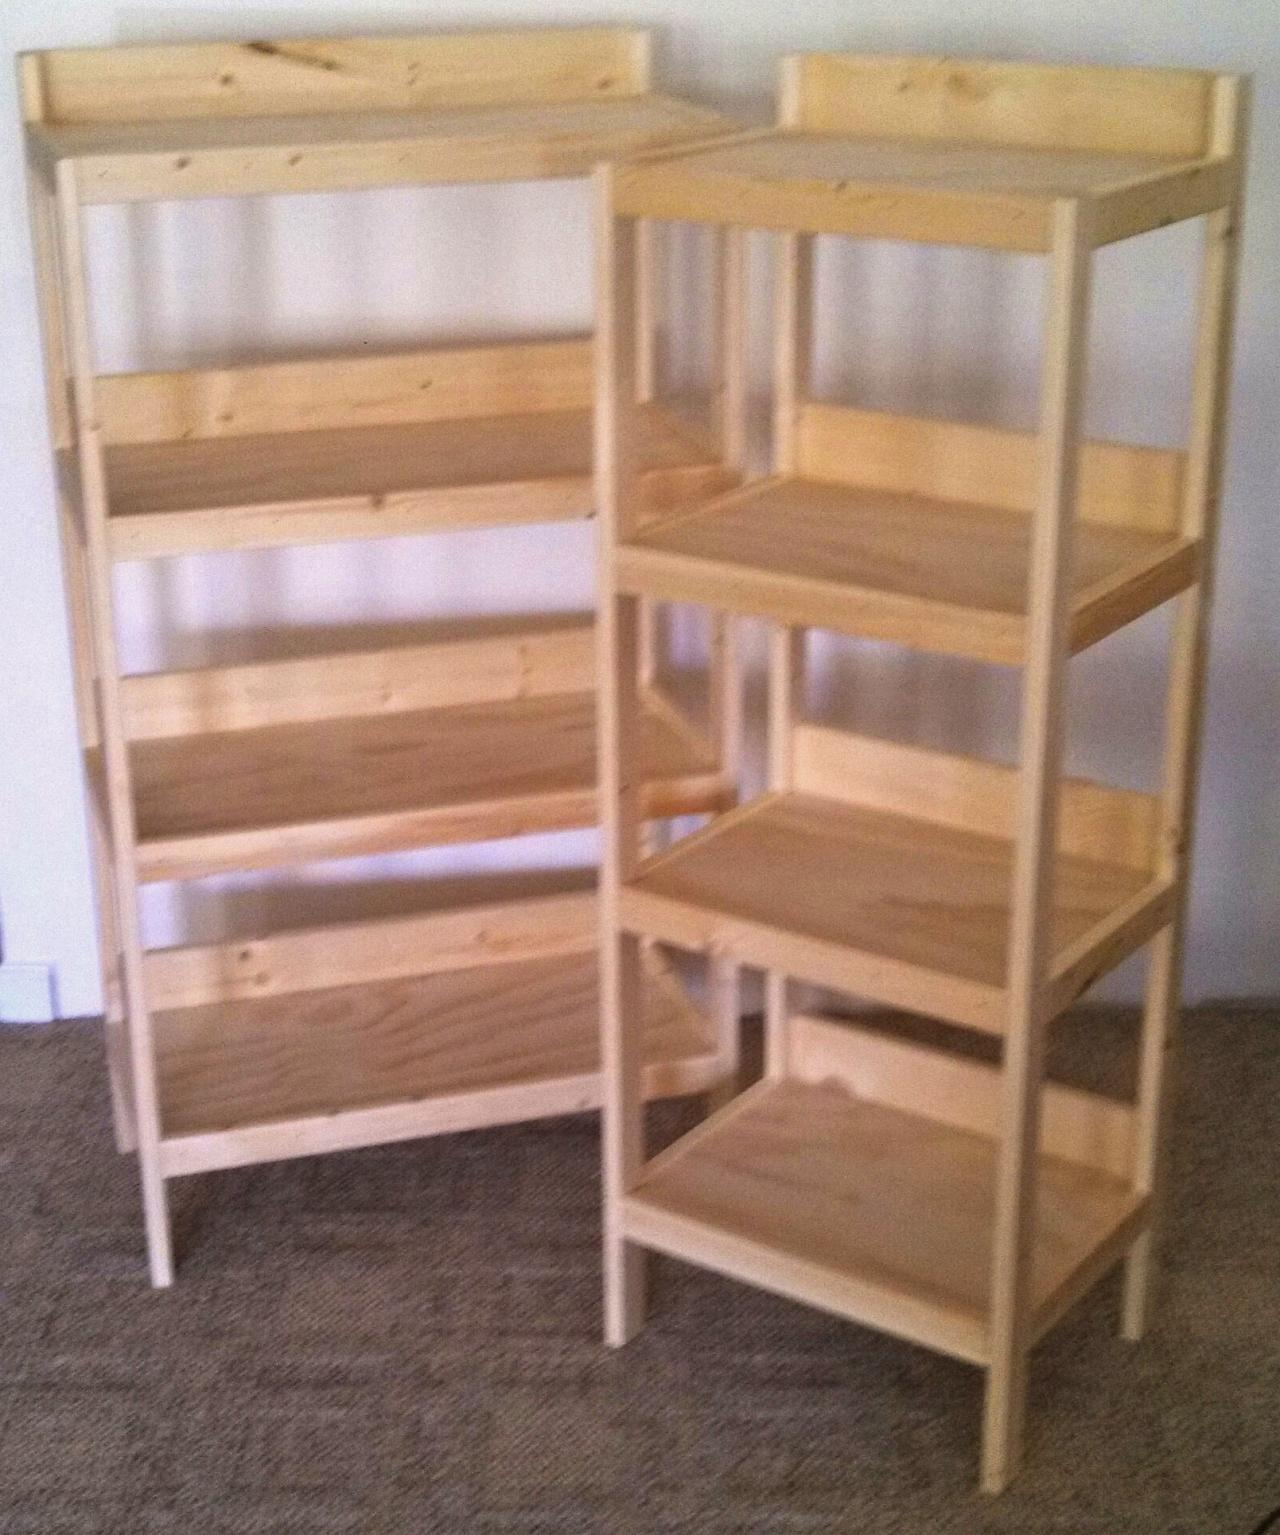 Fullsize Of Basic Wooden Shelves